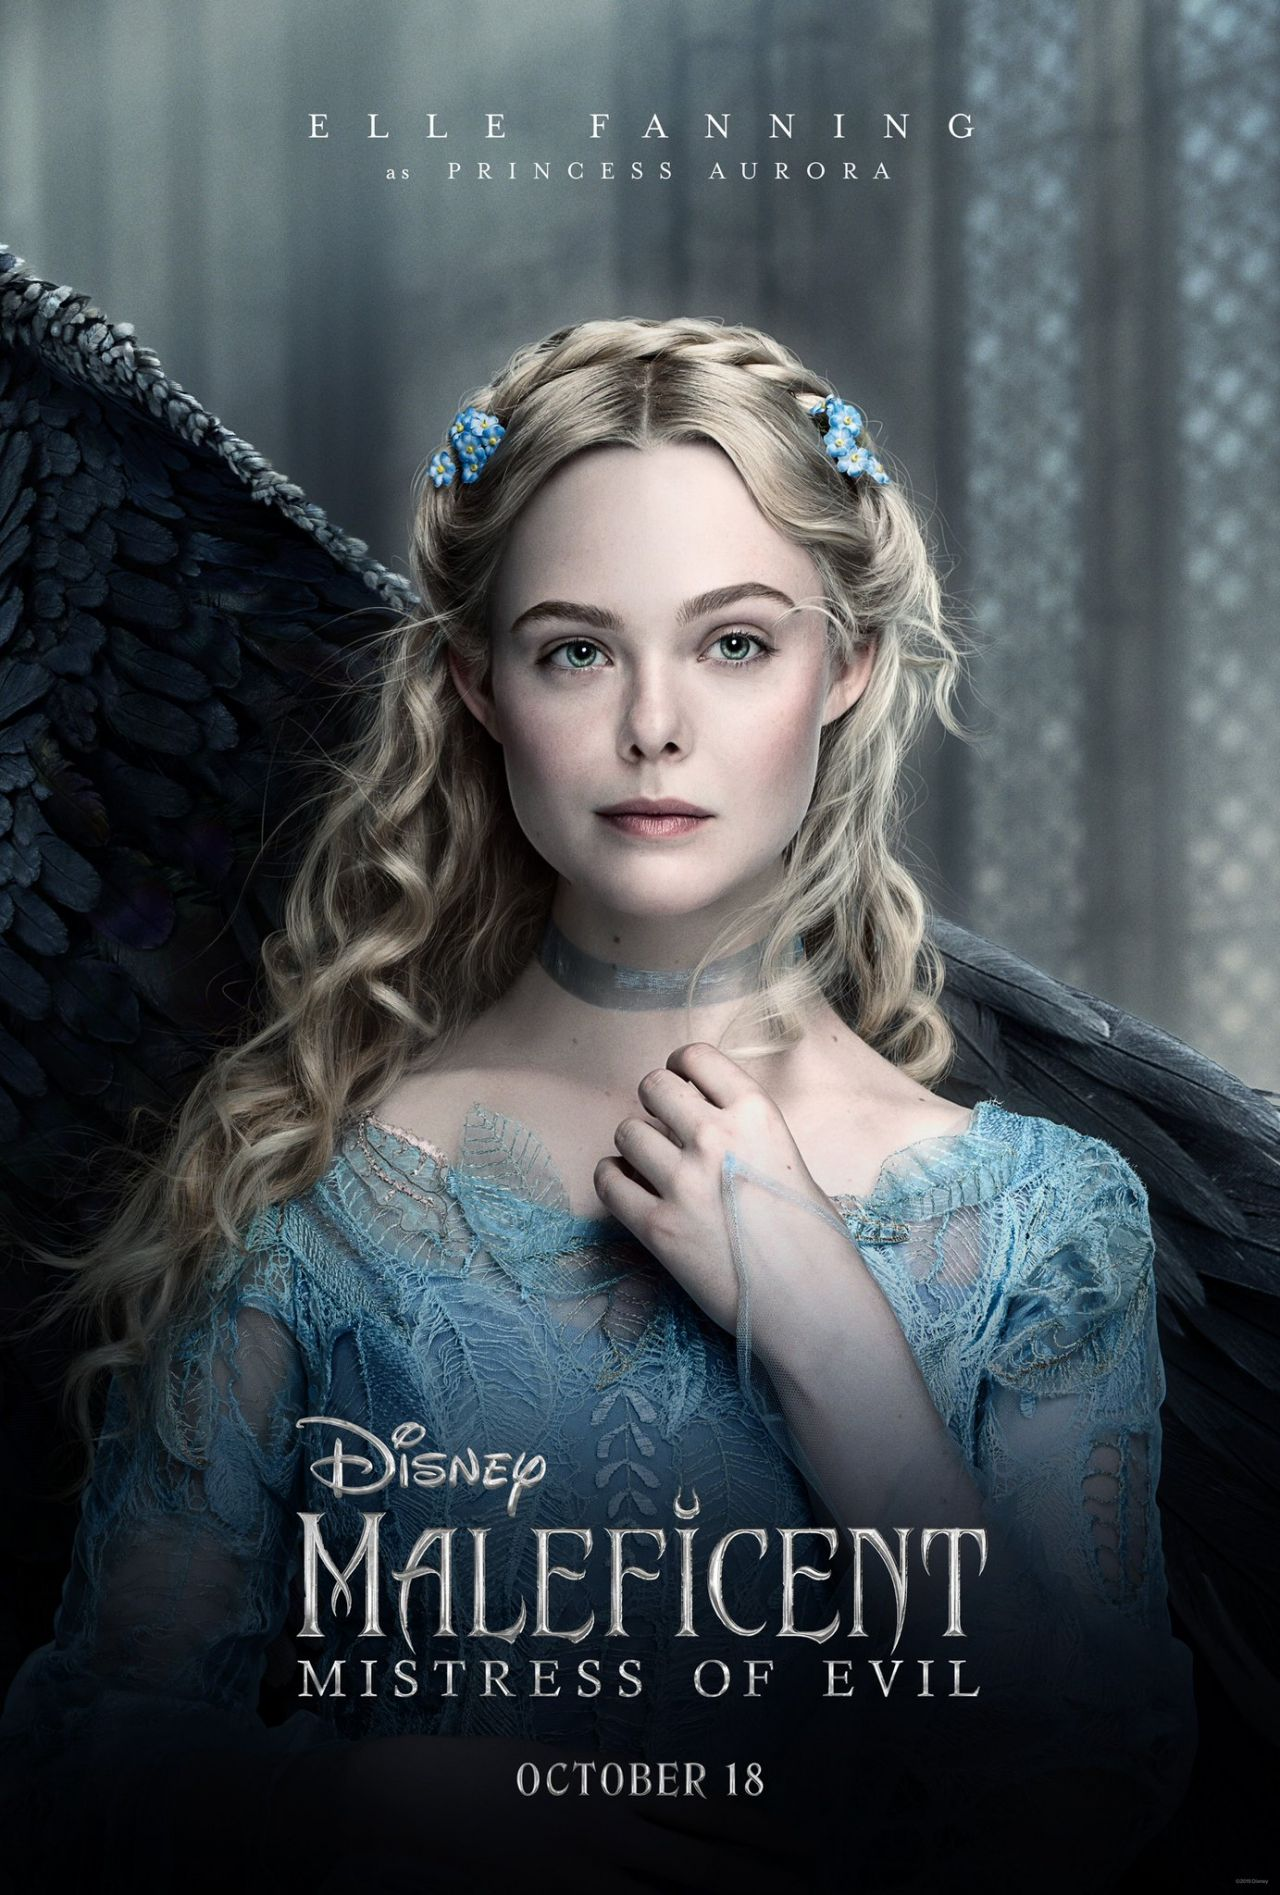 Elle Fanning Maleficent Mistress Of Evil Posters